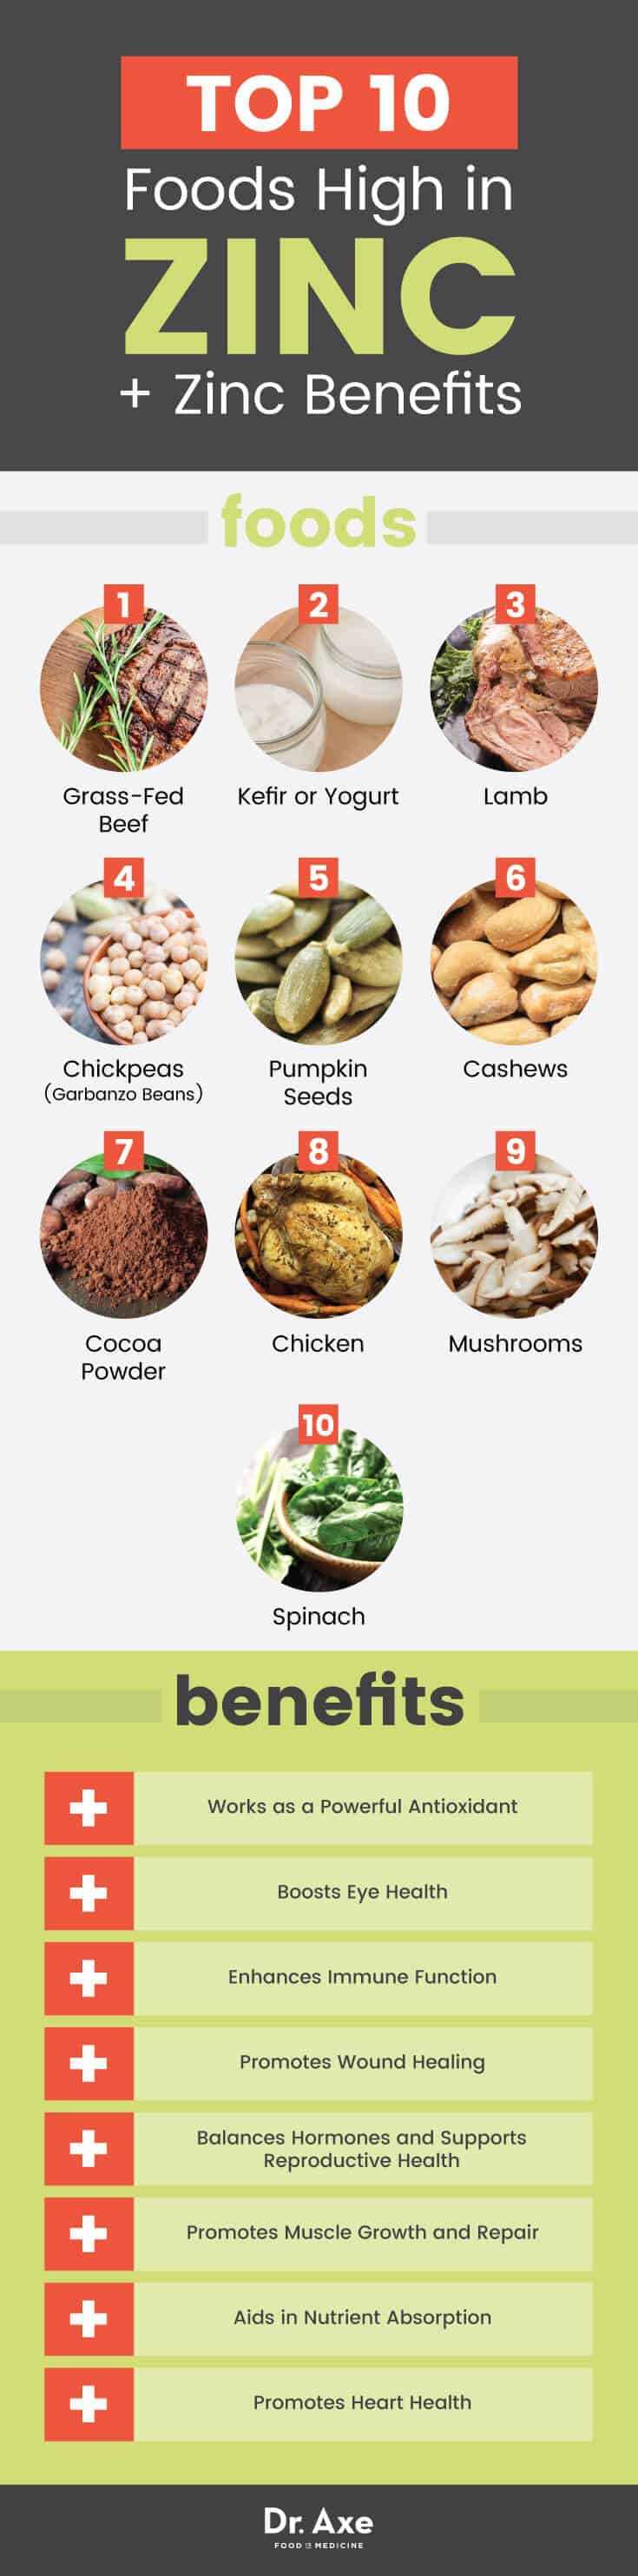 Top 15 Foods High in Zinc and Their Health Benefits  Dr Axe